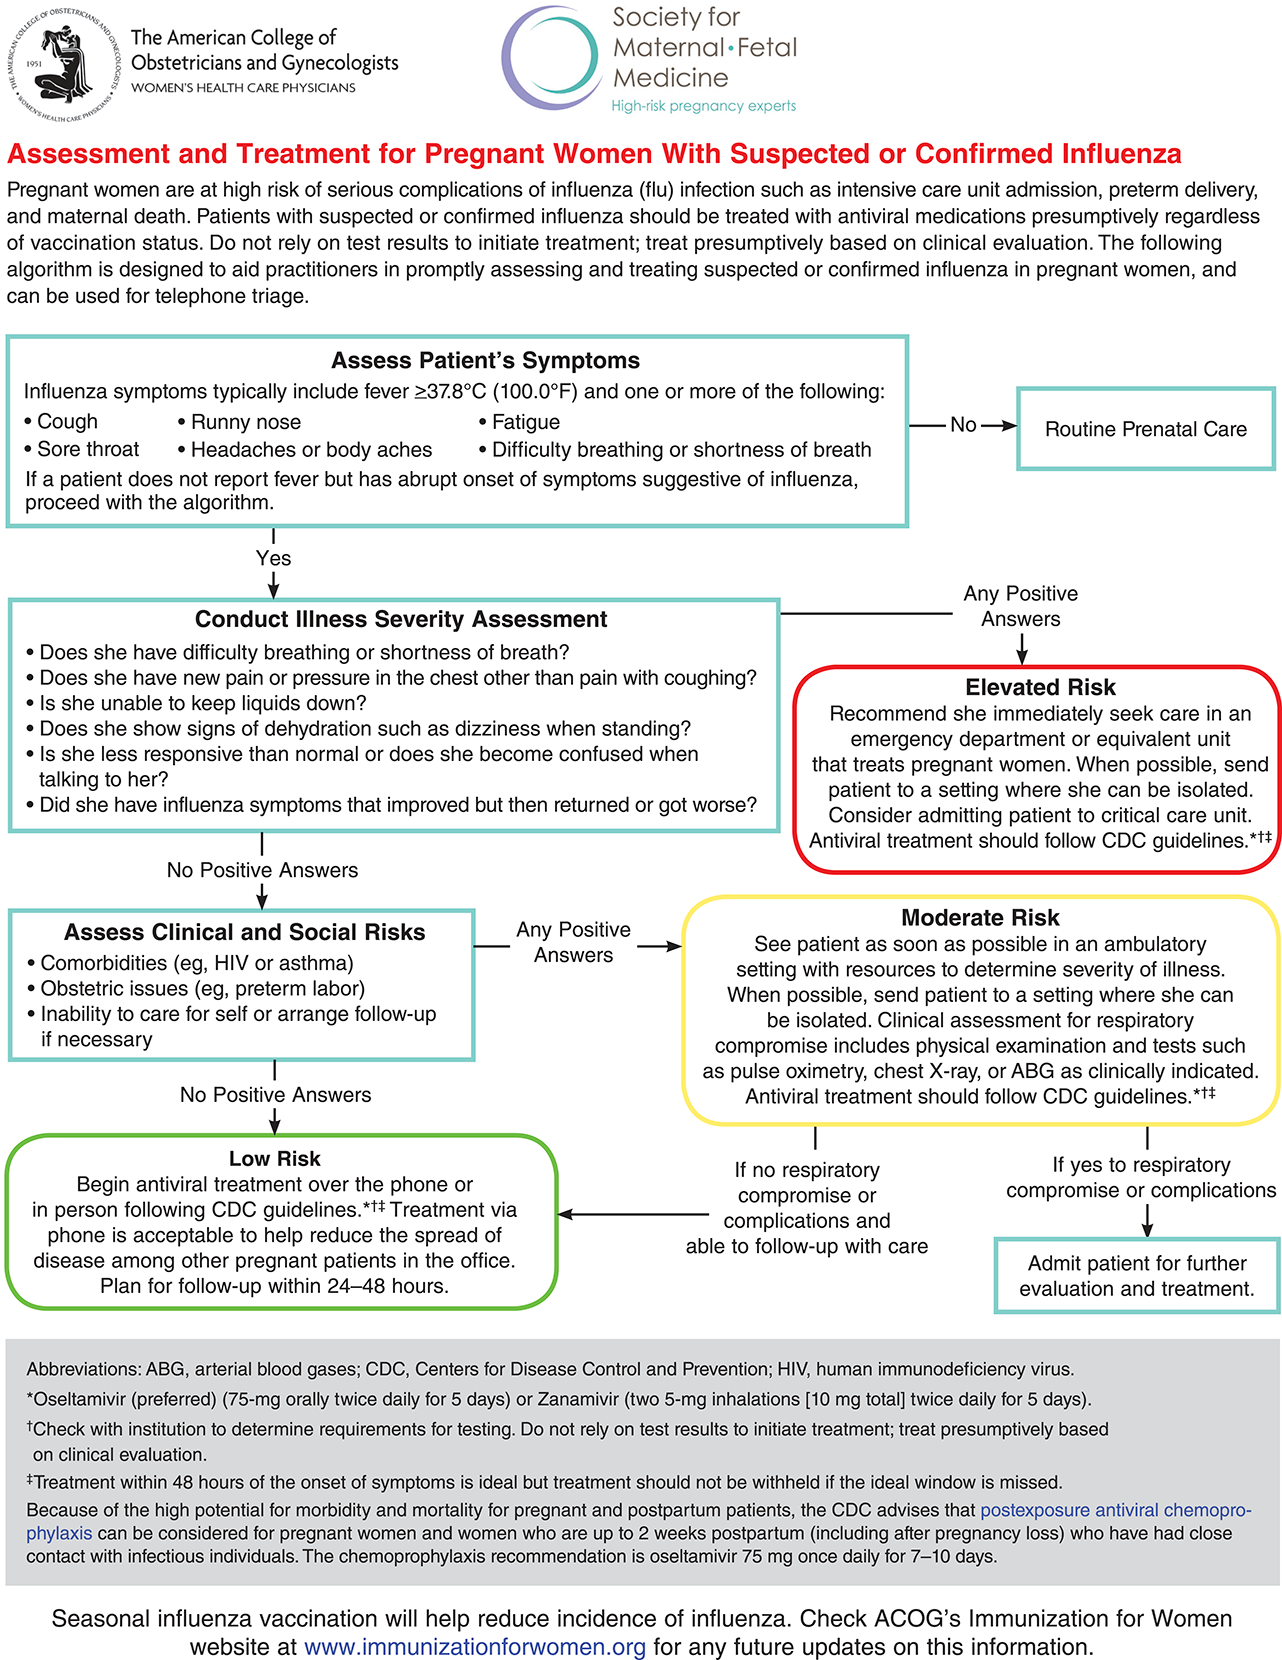 Assessment and Treatment of Pregnant Women With Suspected or Confirmed Influenza